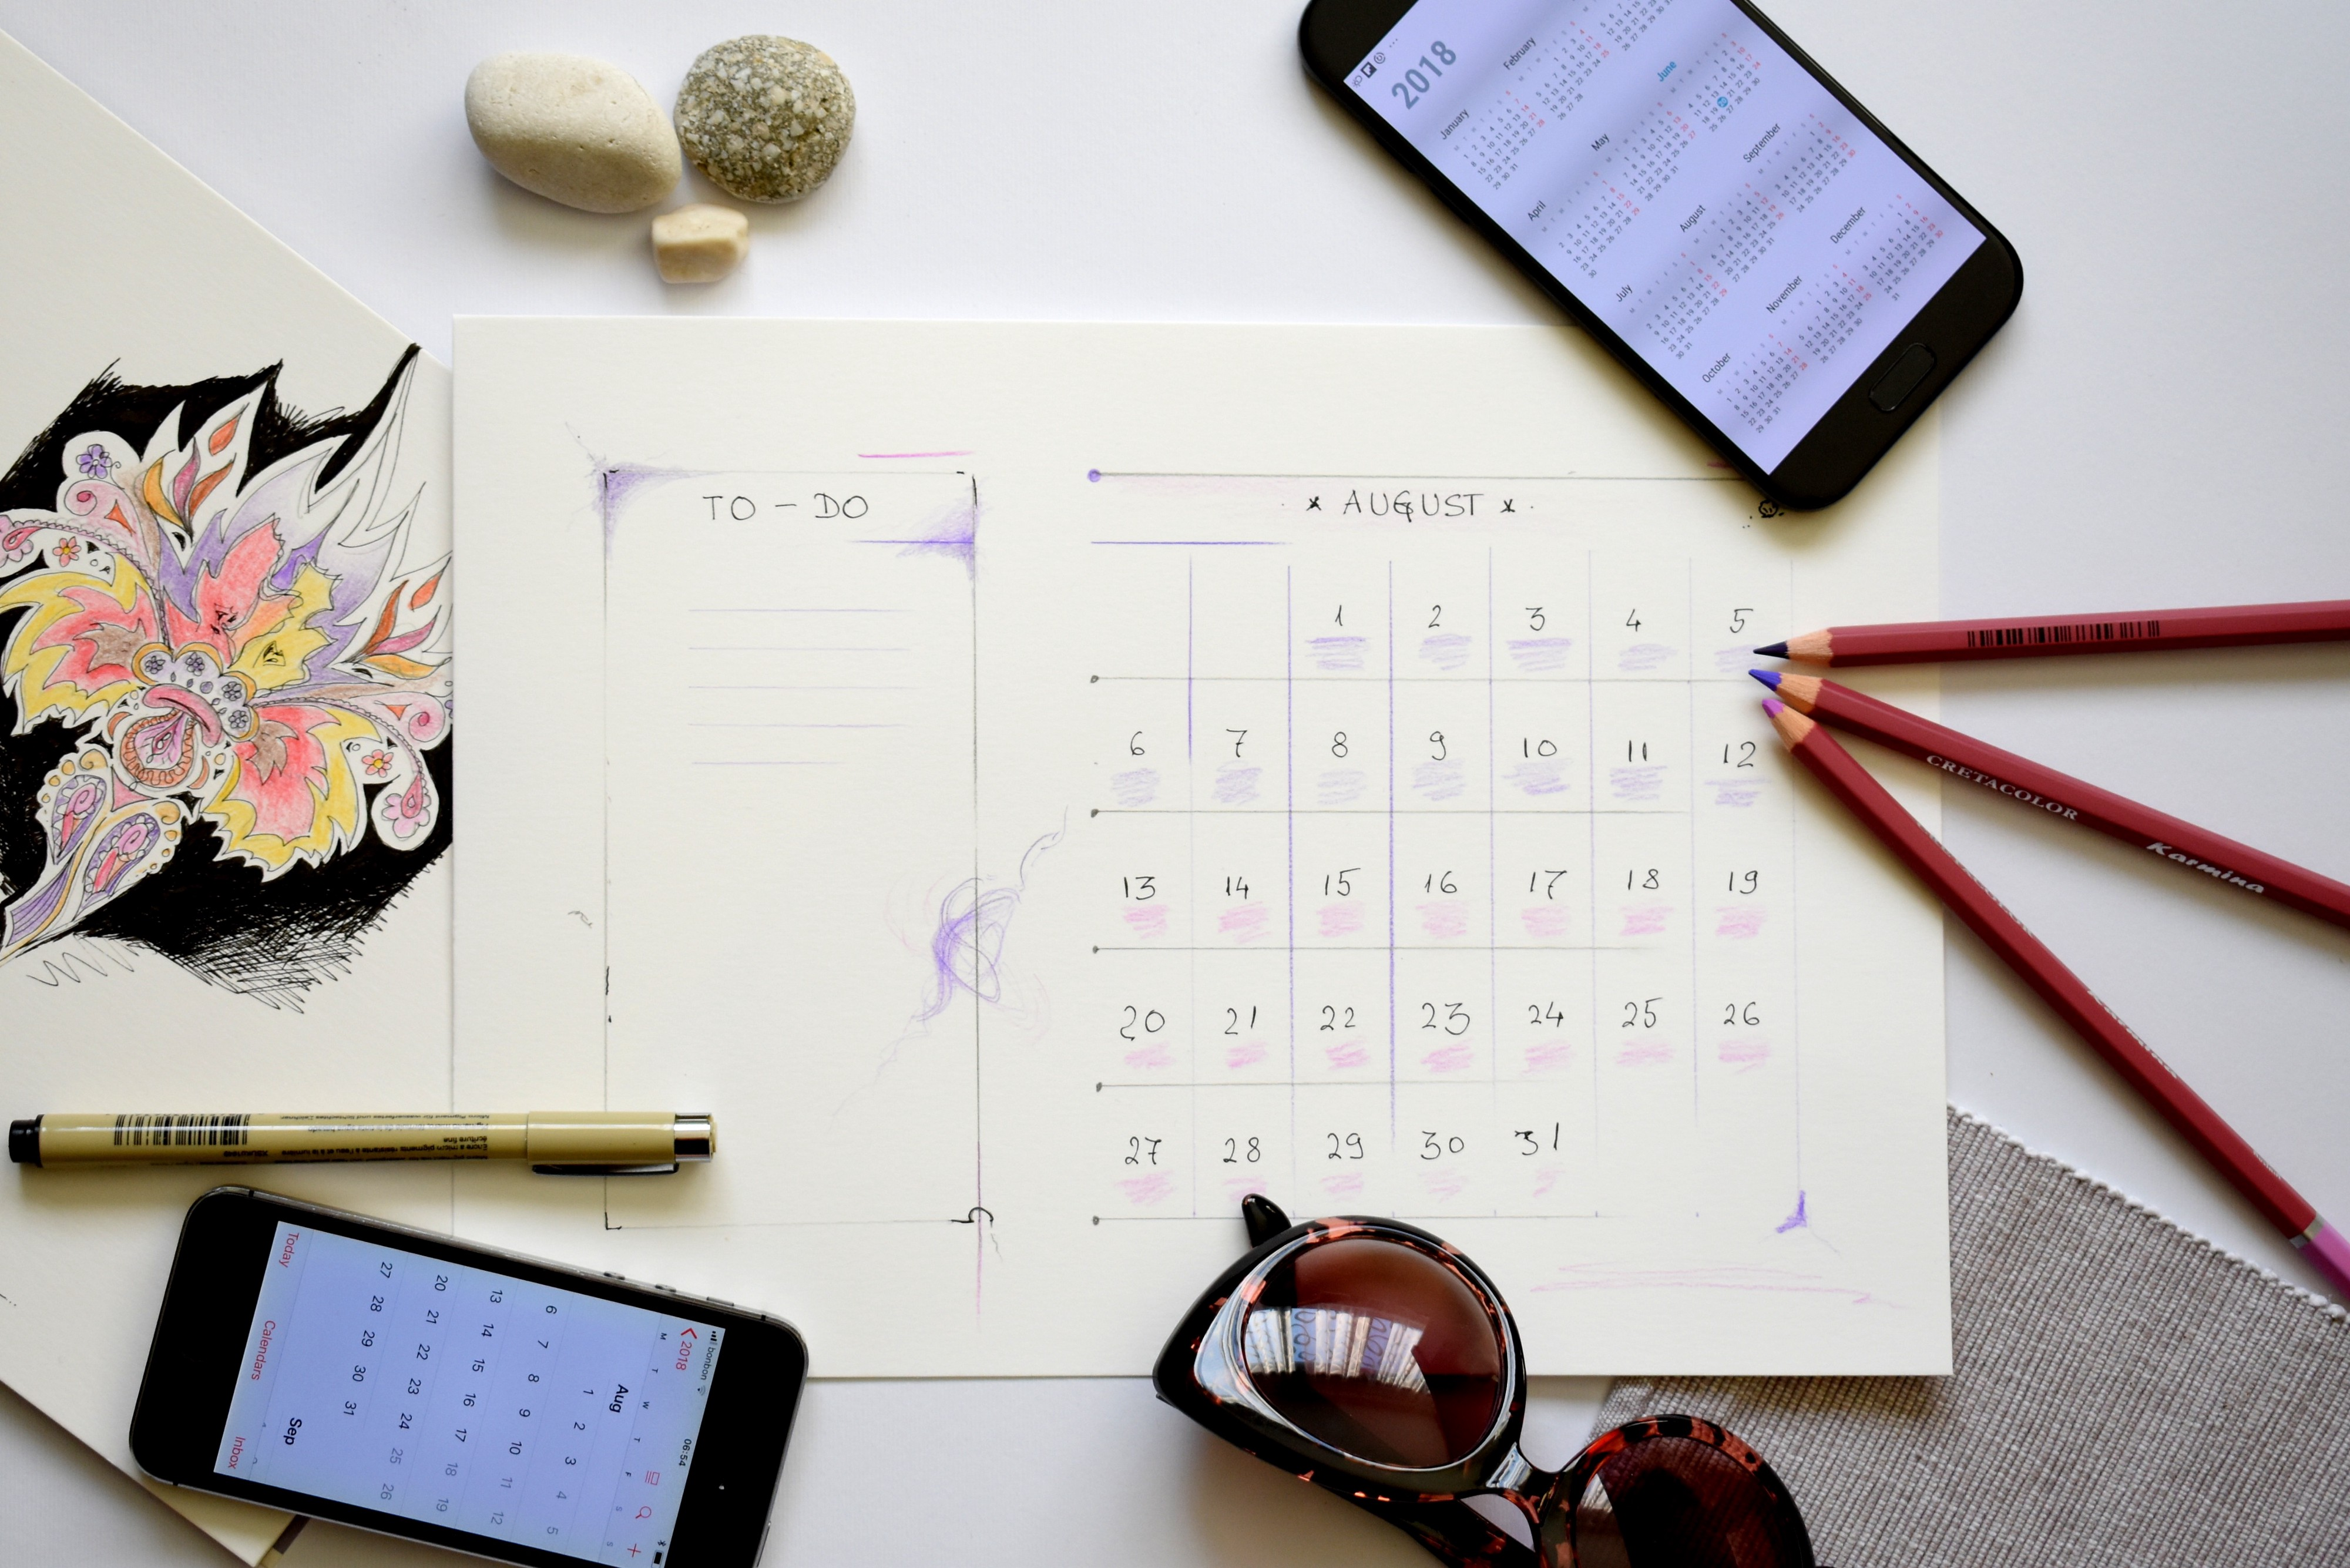 Using the Todoist App to Boost Writing Productivity